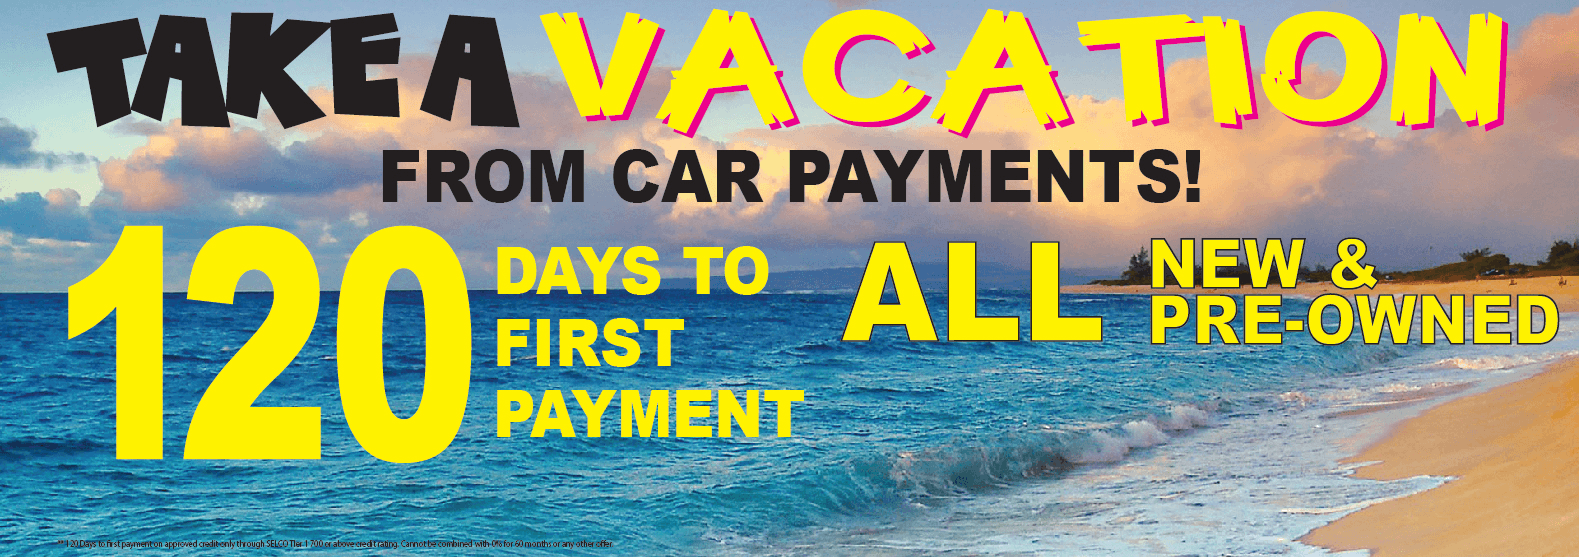 Take a vacation from interest and car payments at Capitol Subaru in Salem, OR